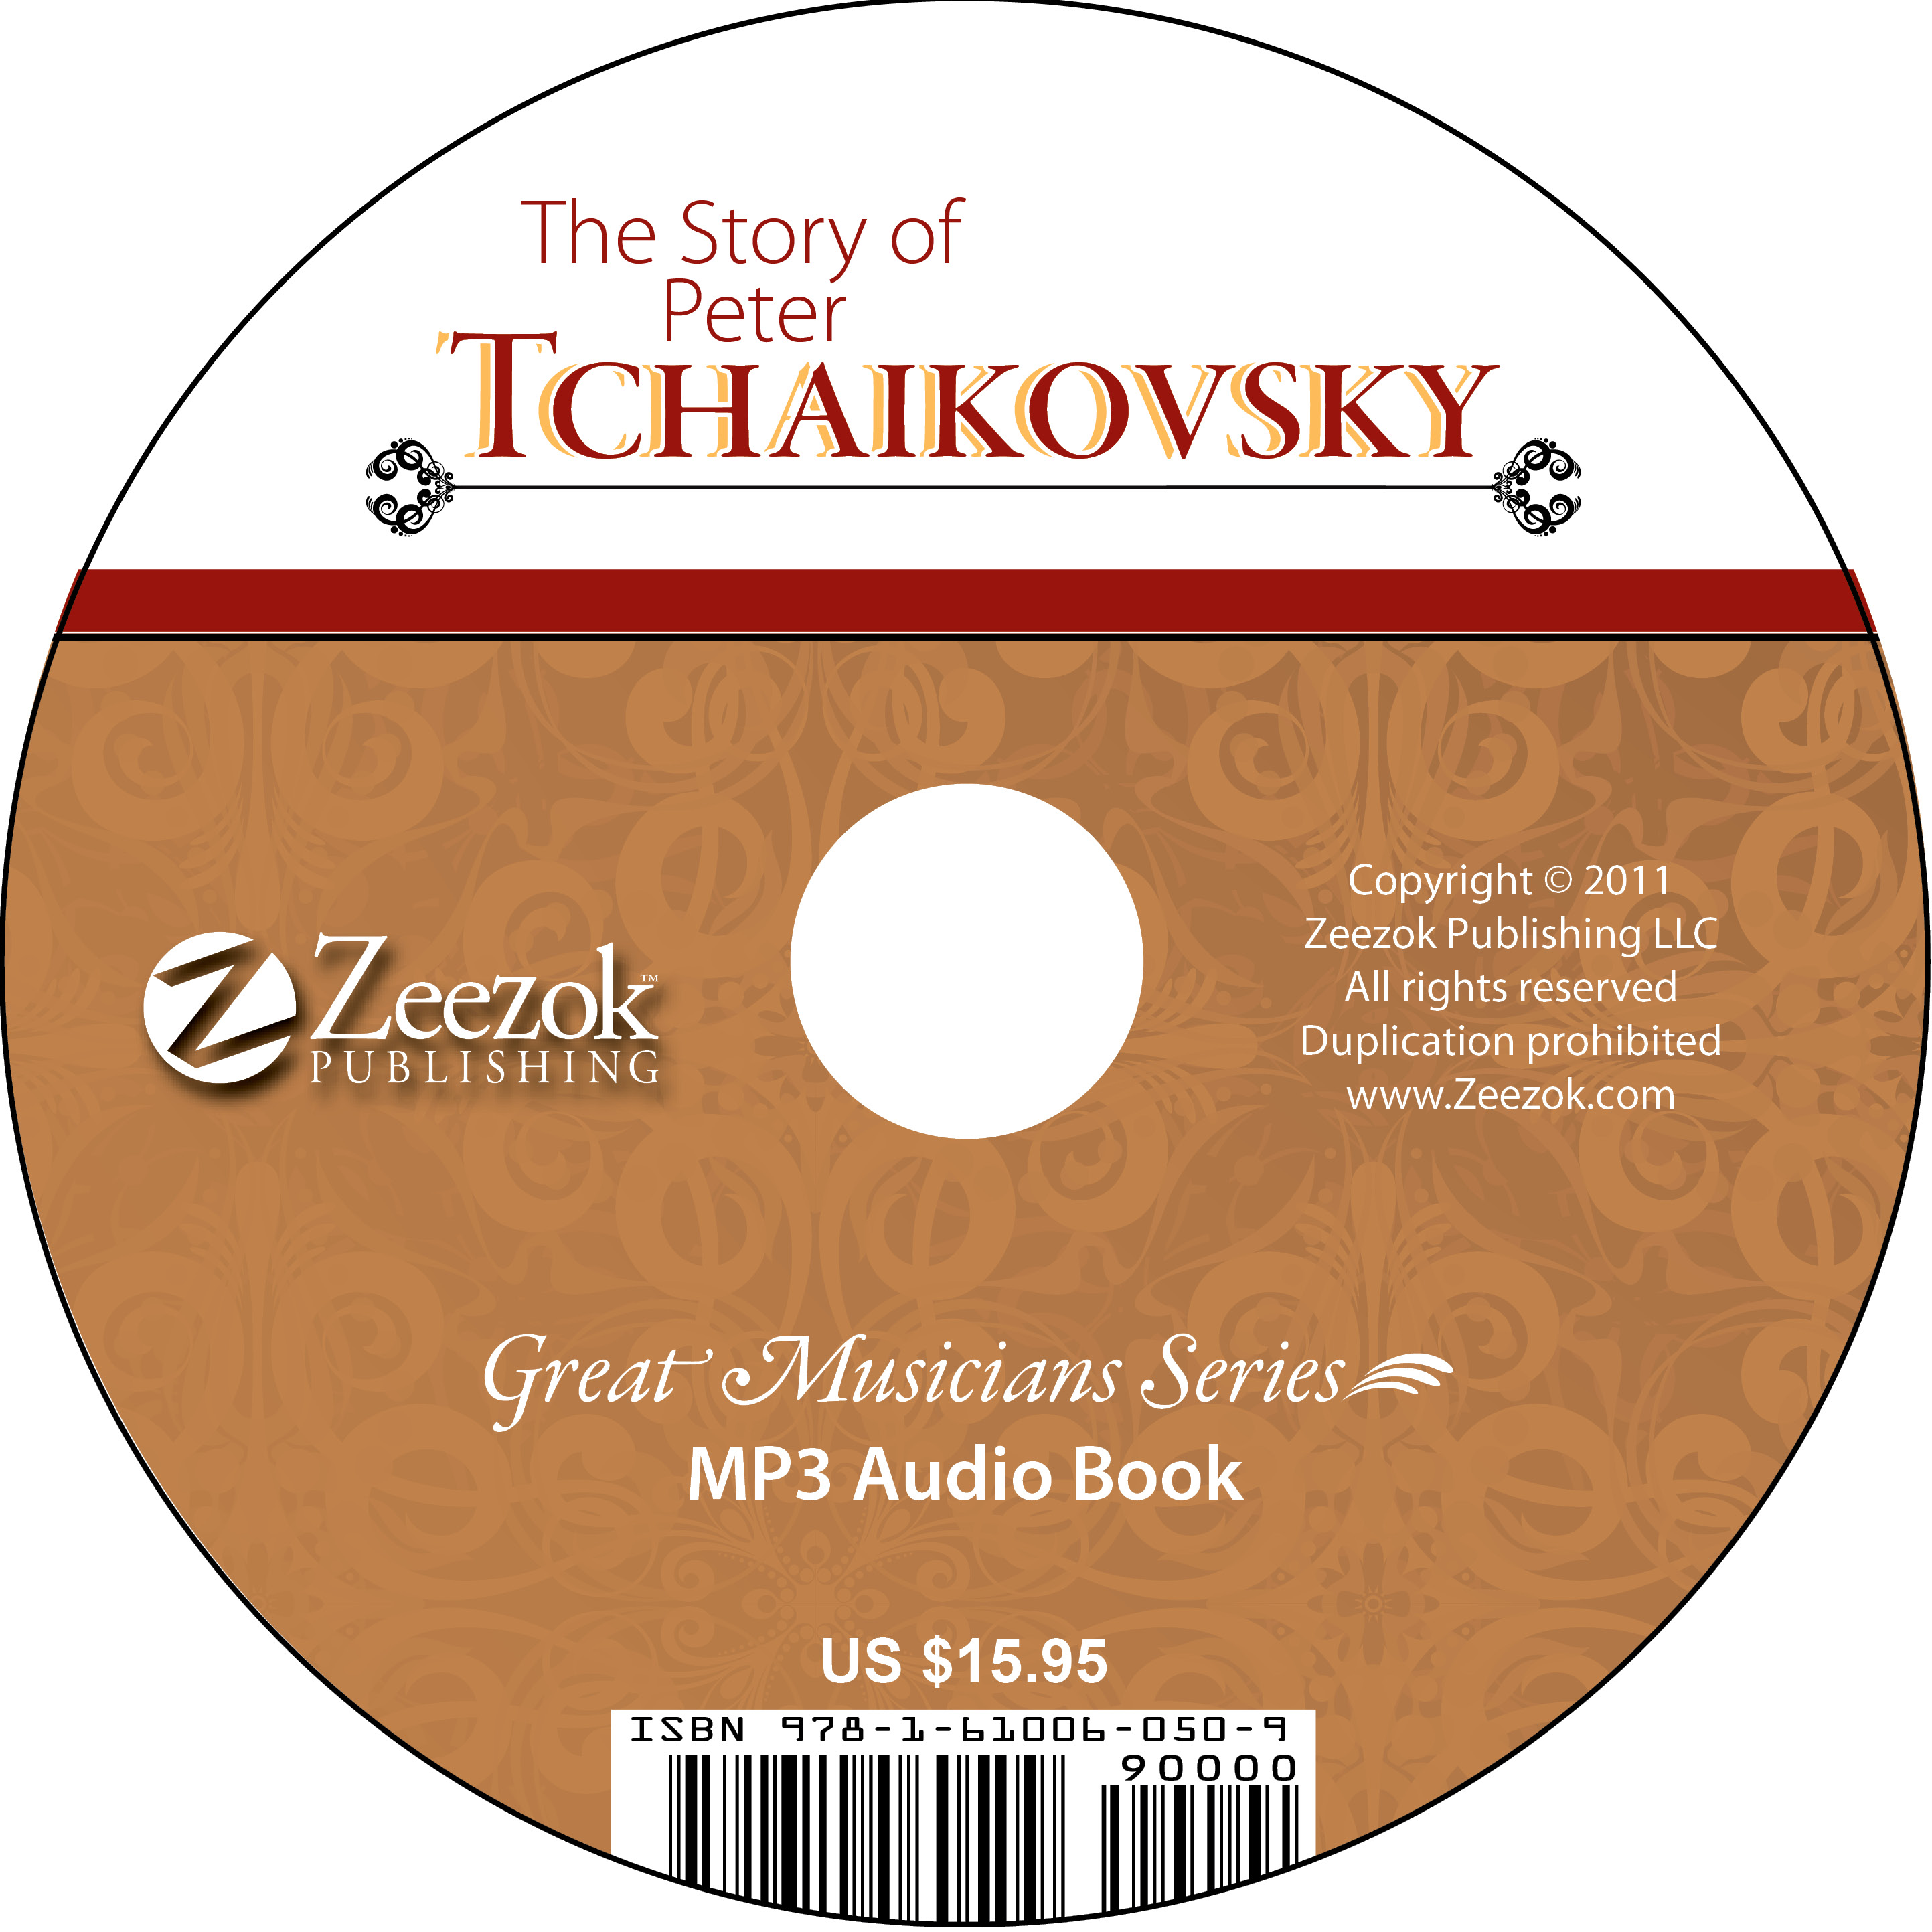 The Story of Peter Tchaikovsky Audio Book on CD (MP3 format) - photo#2